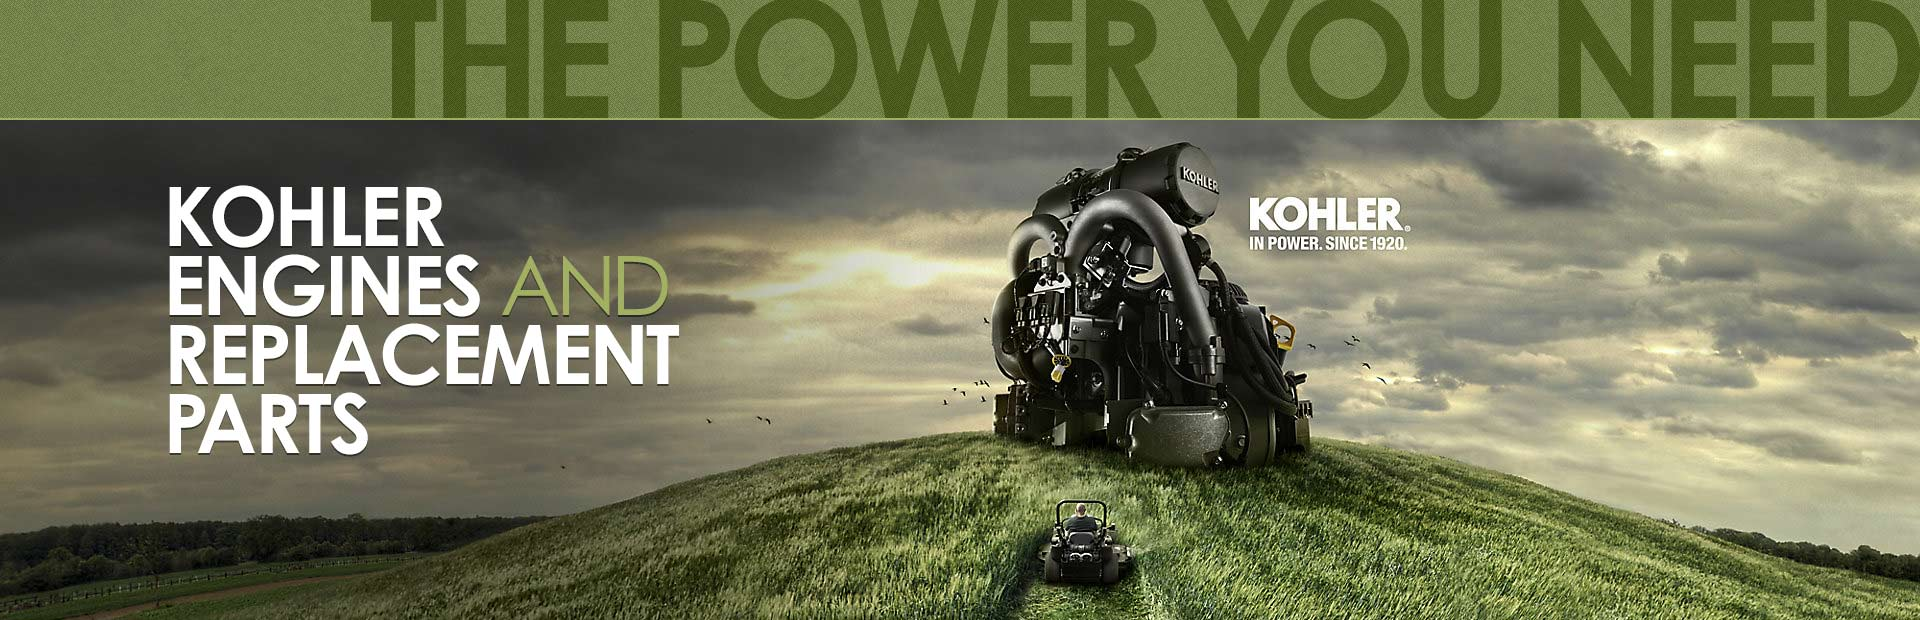 Kohler Engines and Replacement Parts: Click here to view the models.